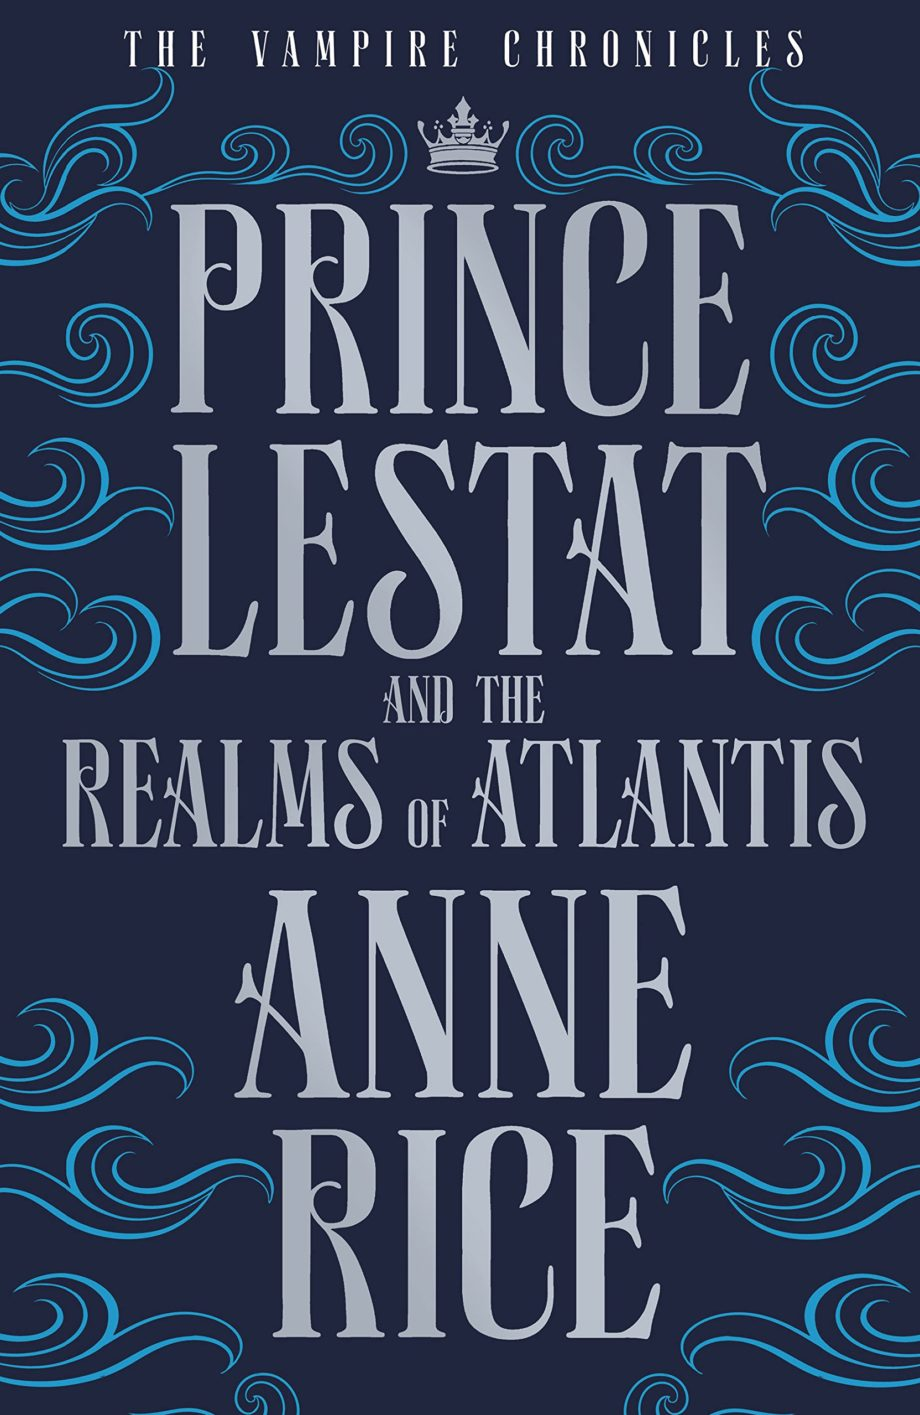 Энн Райс – «Prince Lestat and the Realms of Atlantis»